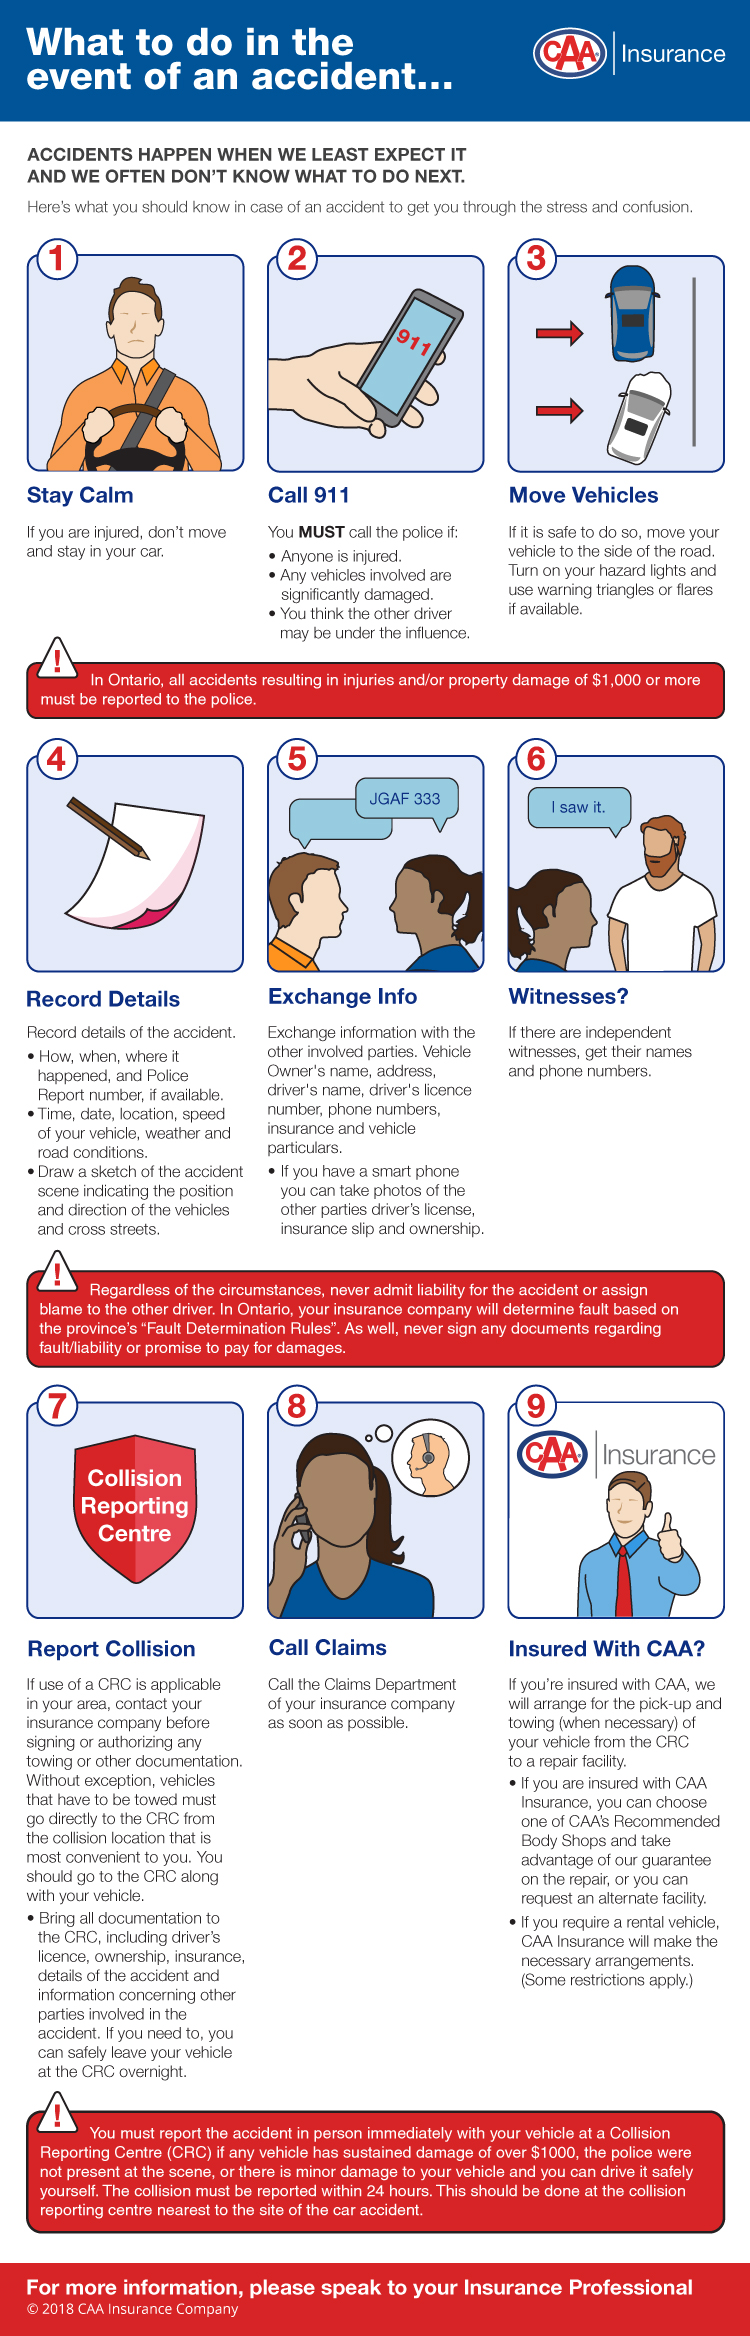 CAA Accident Infographic